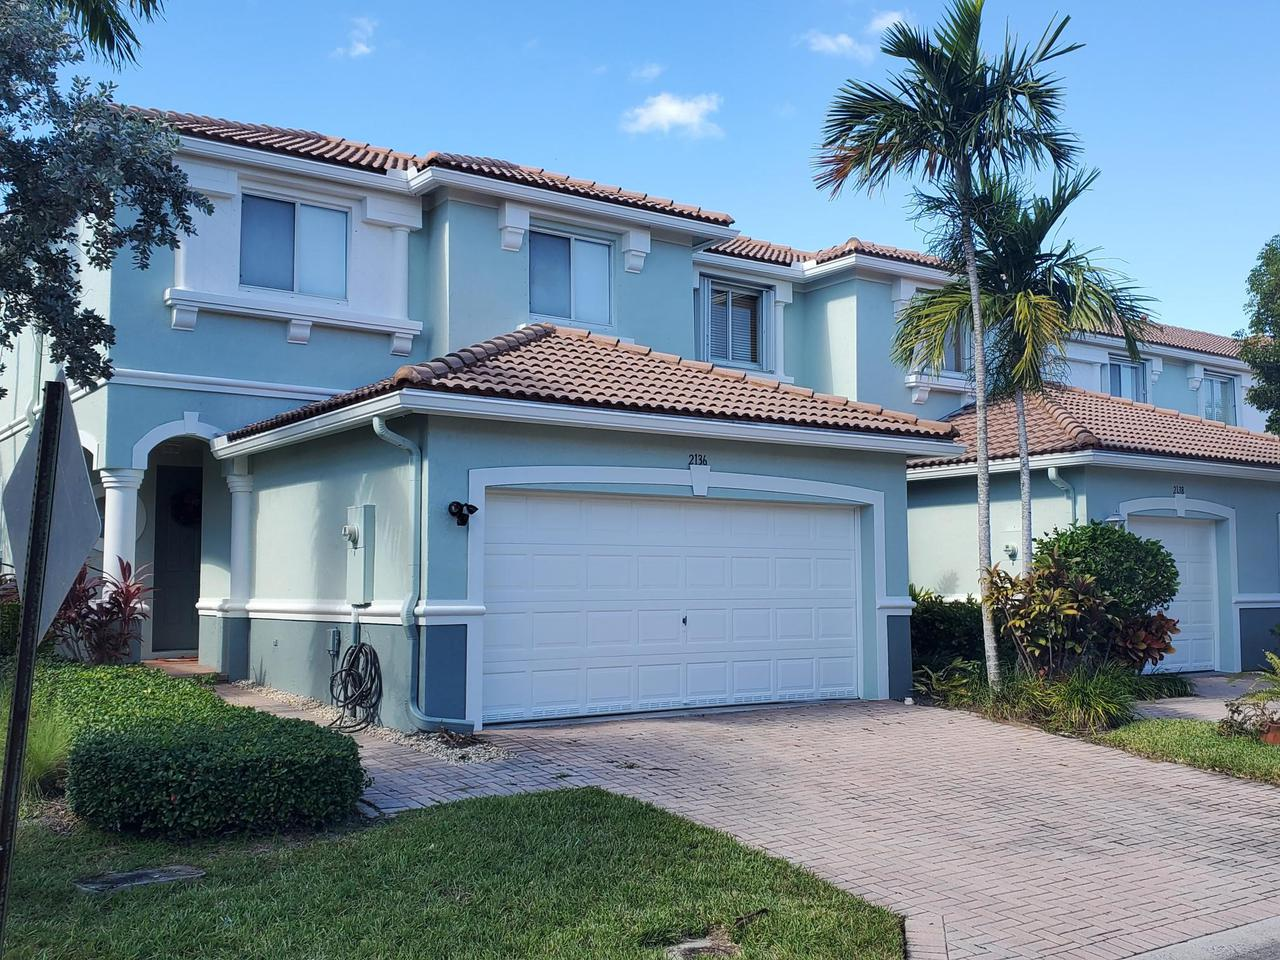 Paint manufacturer in South Florida.